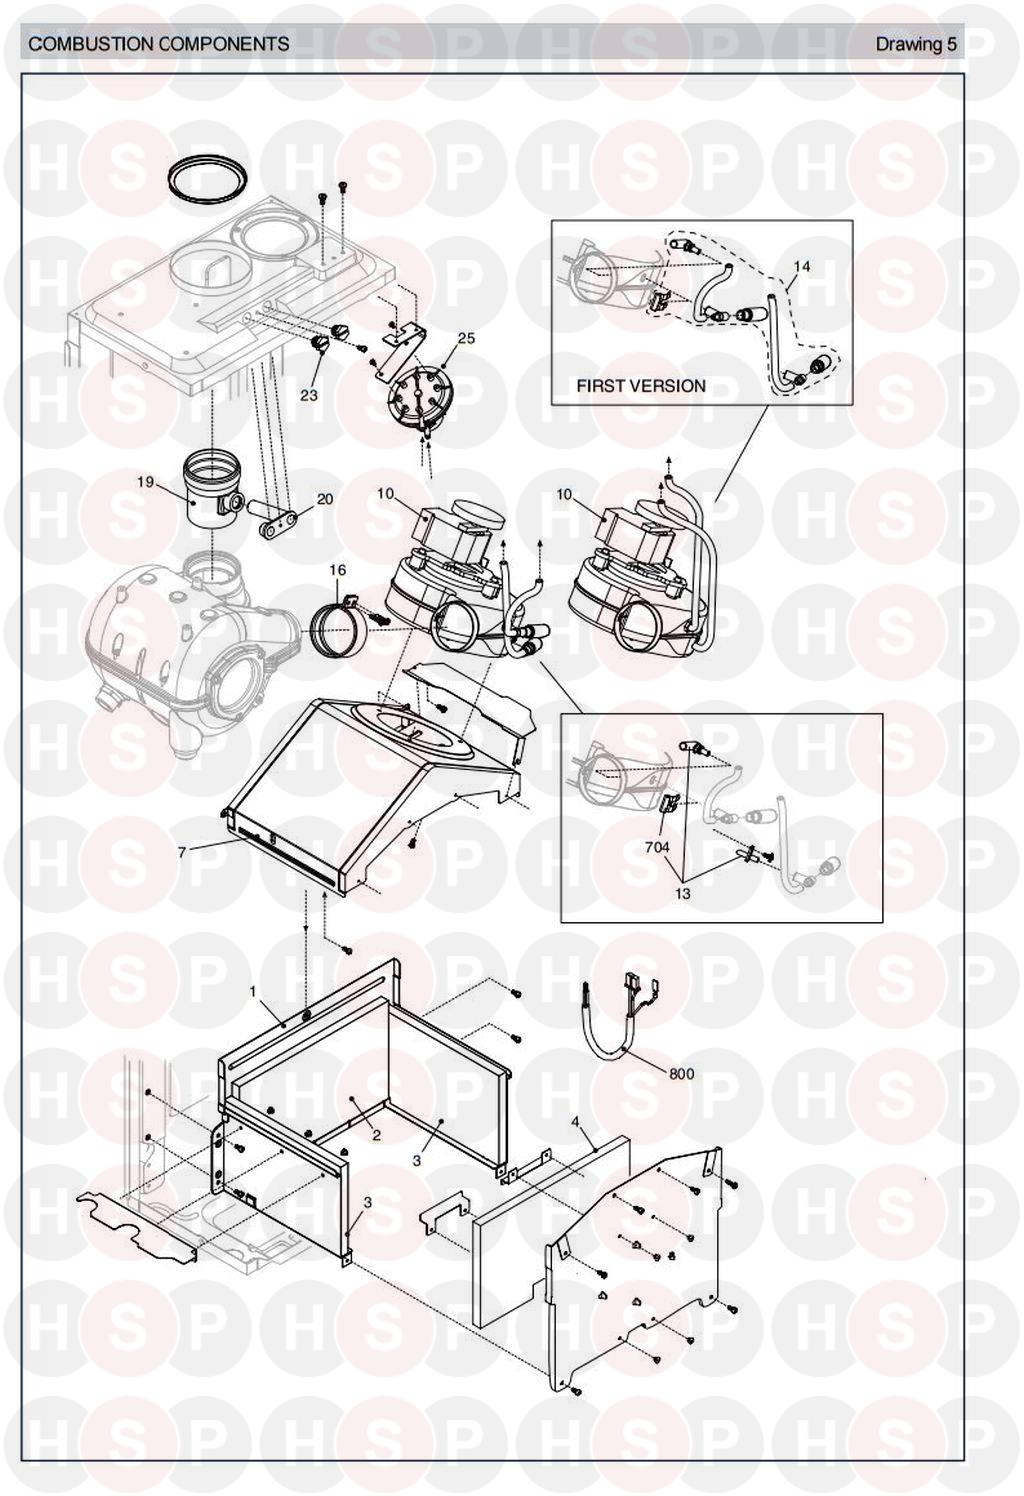 Combustion Components diagram for Vokera Sabre 29 HE Rev 6 (11/2010)